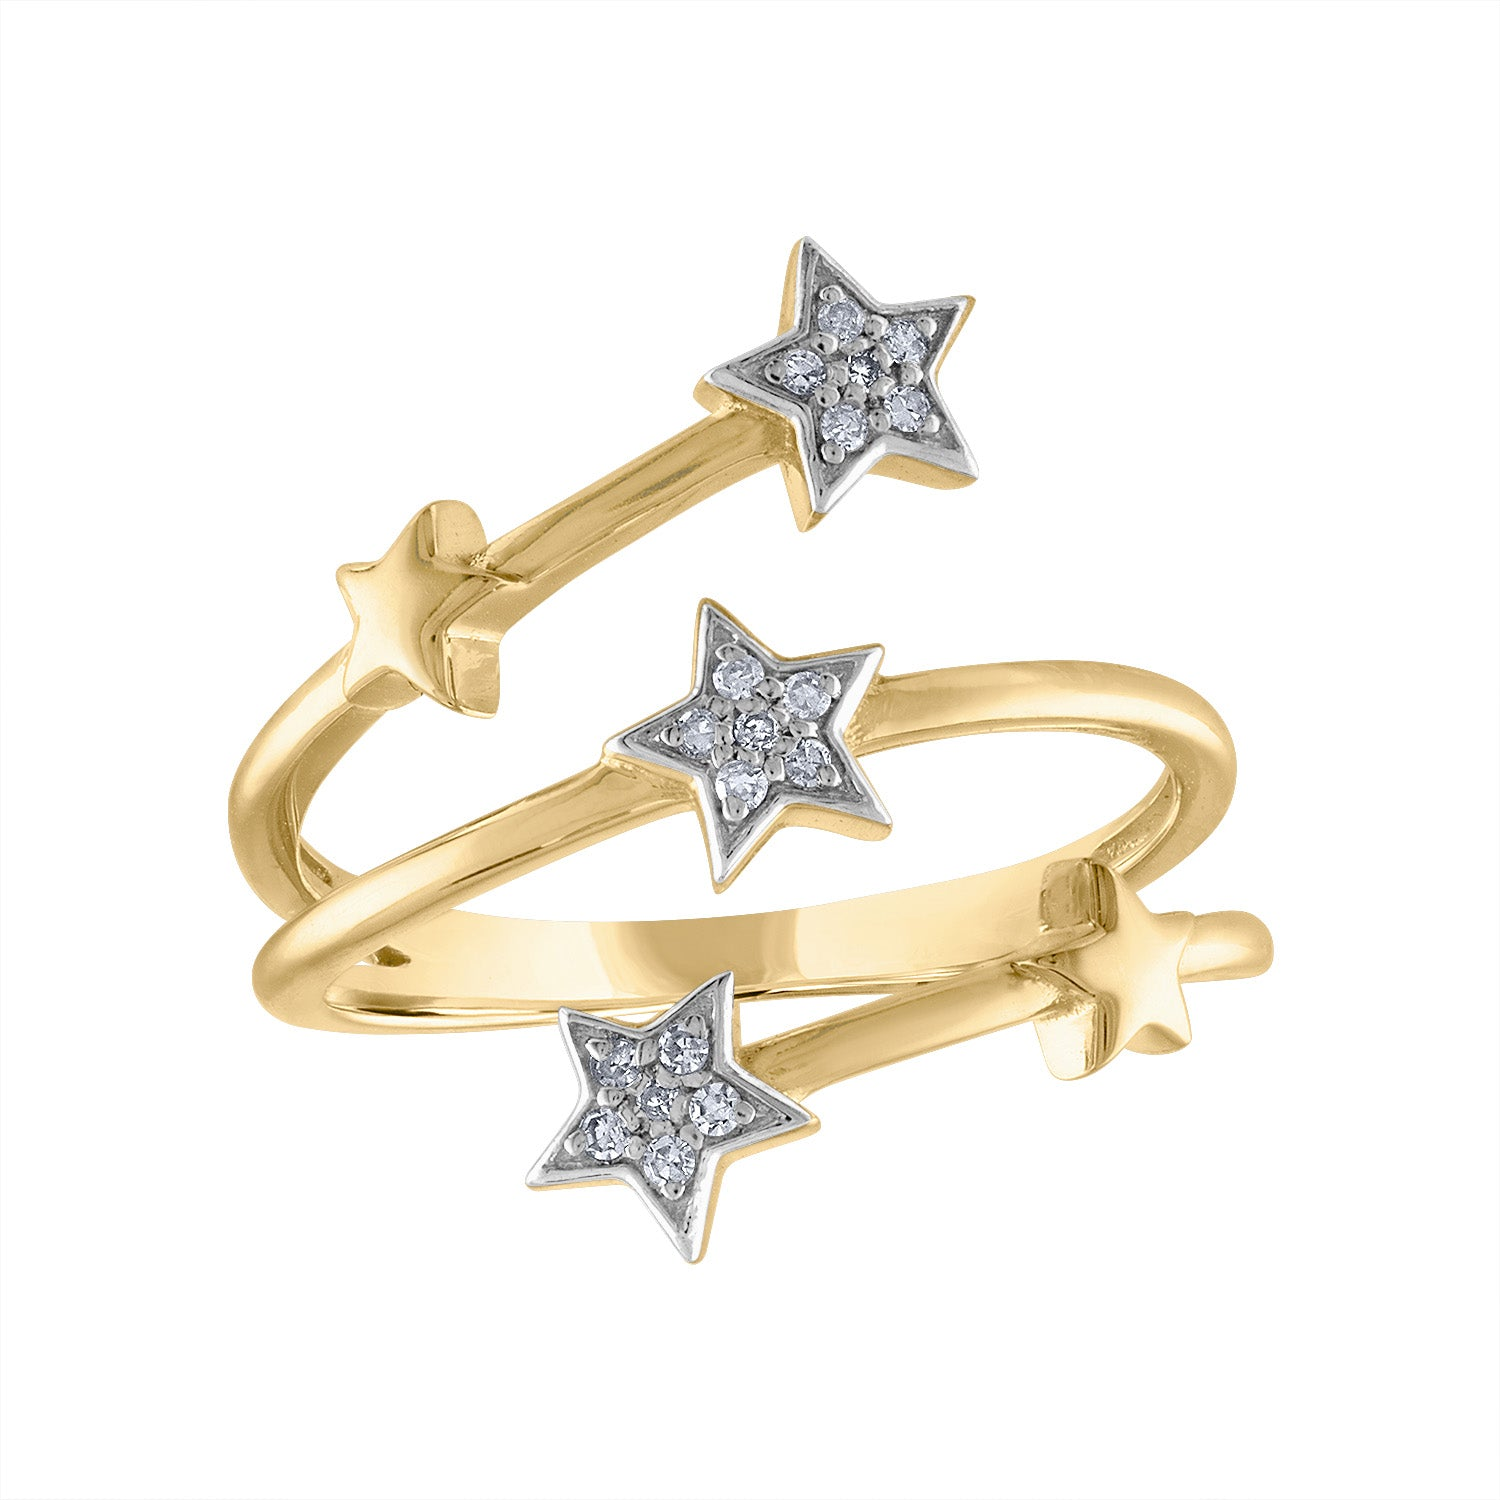 14KT GOLD DIAMOND STAR COIL RING